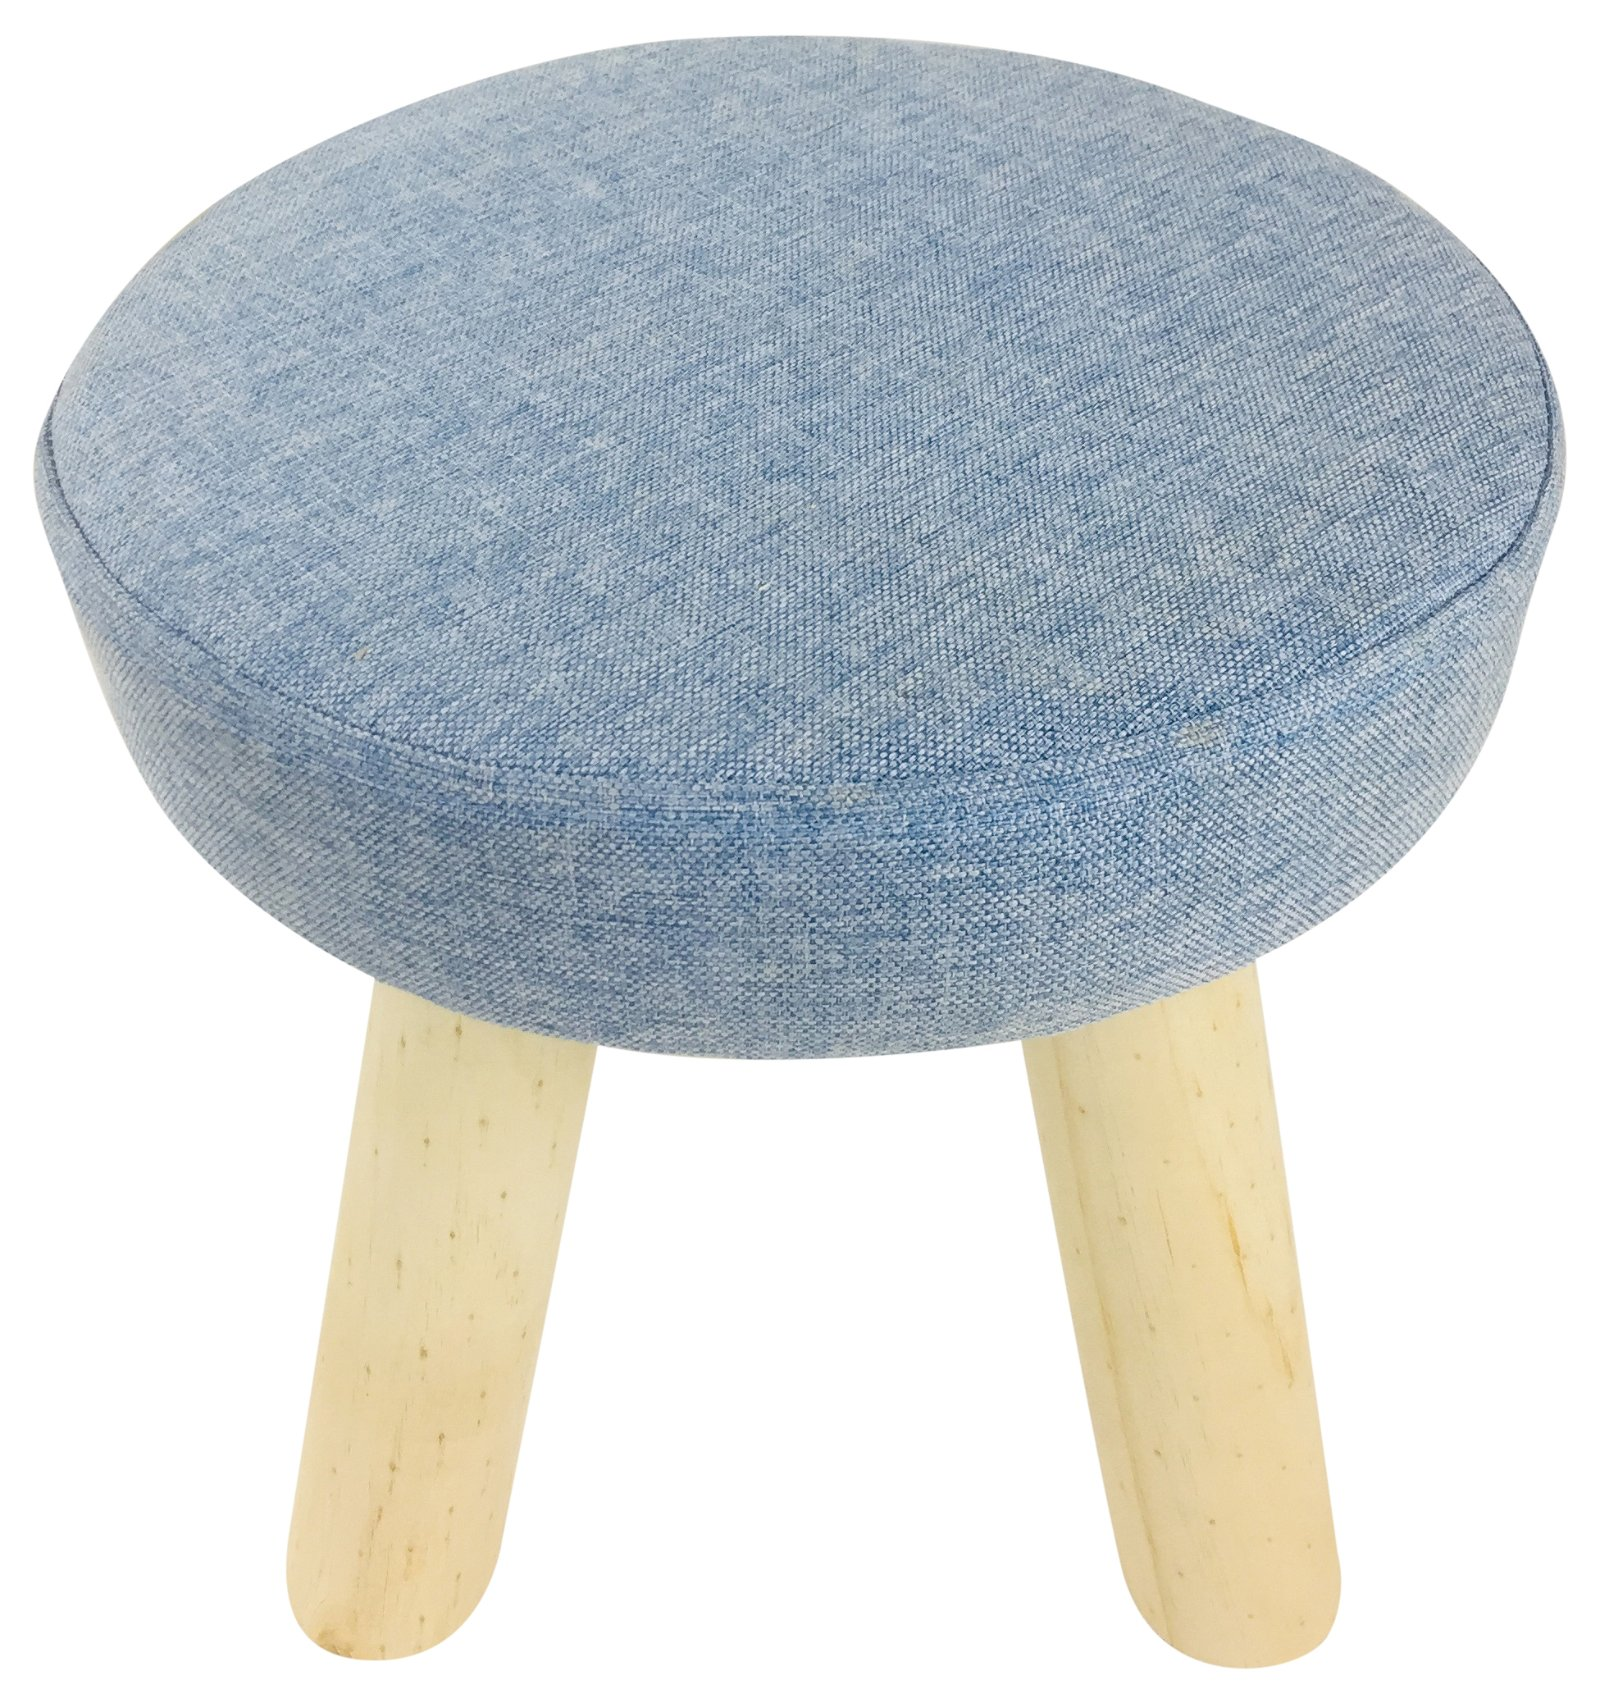 Blue Fabric Wooden Stool 29cm